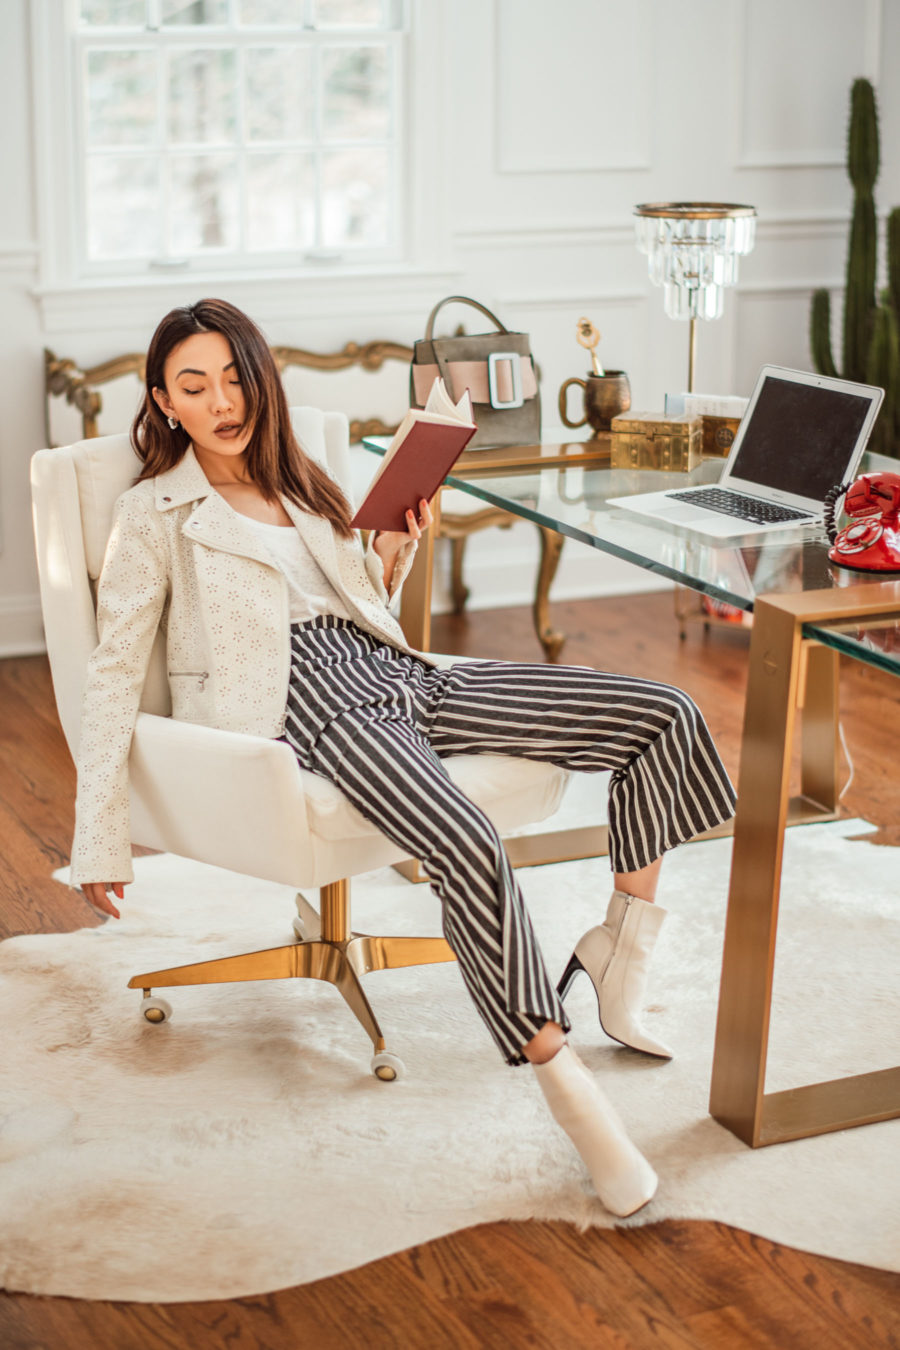 fashion blogger jessica wang at her home office sharing office stationary must-haves // Jessica Wang - Notjessfashion.com